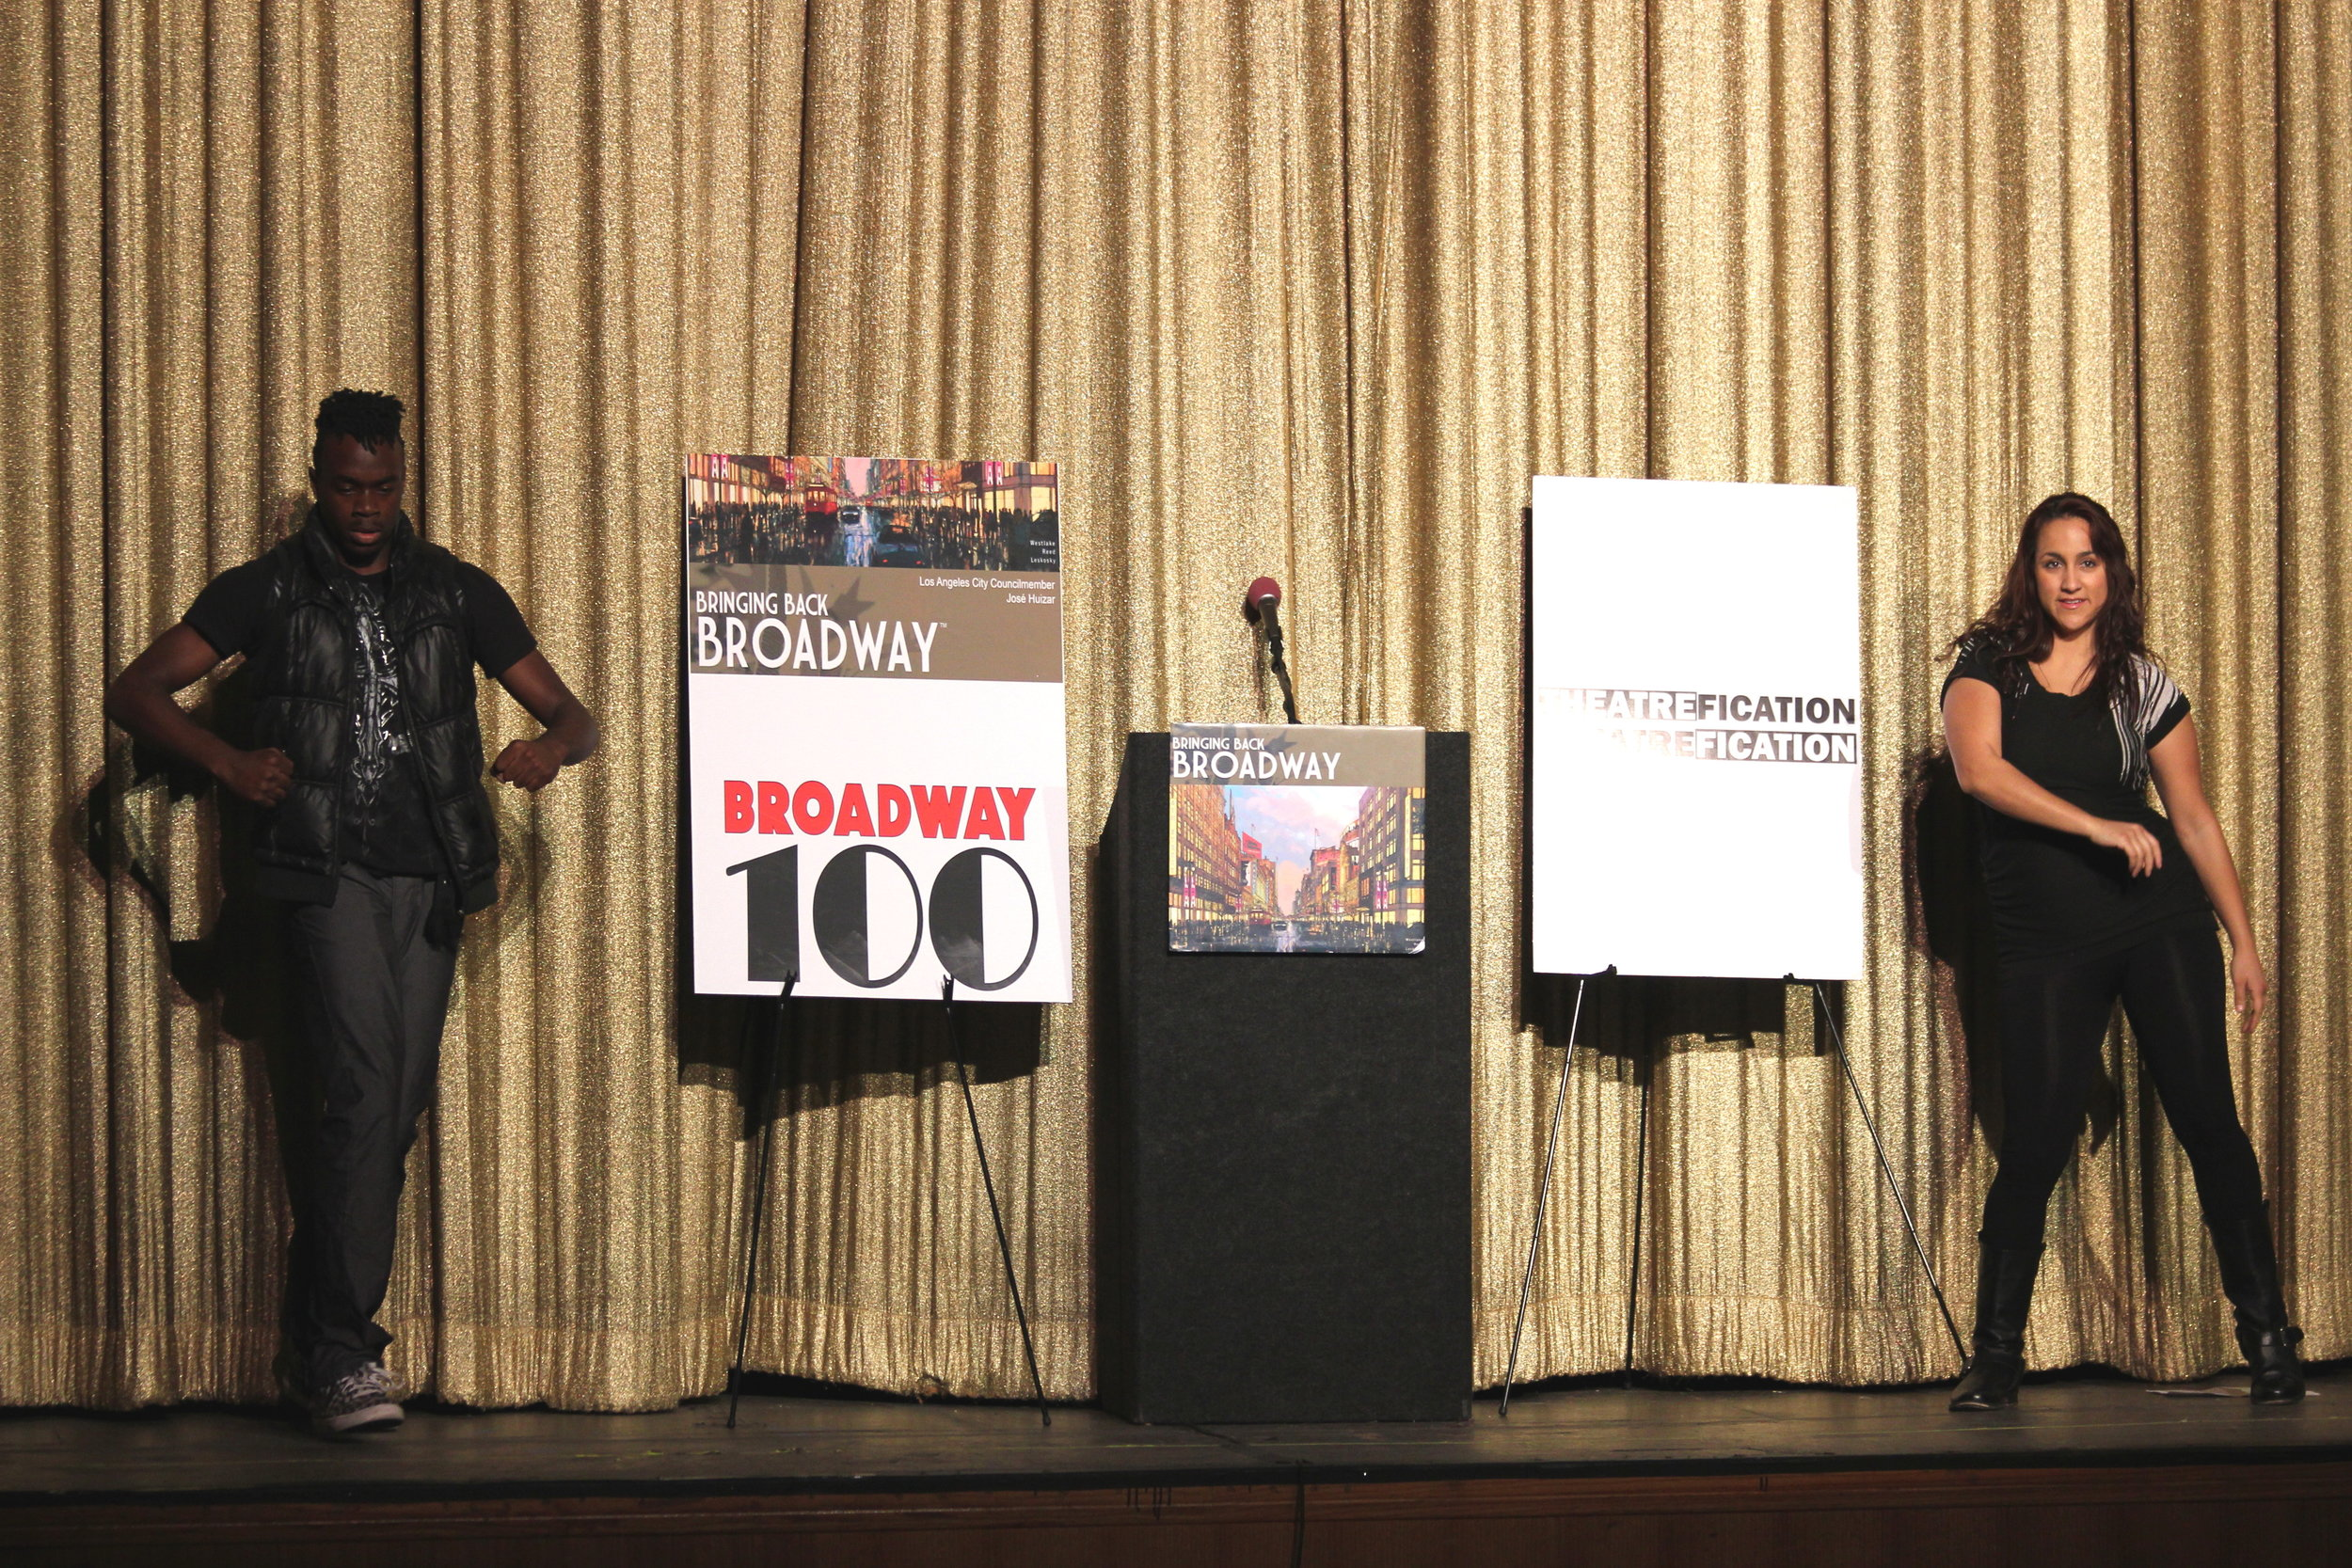 performance-bringing-back-broadway-dtla-theatrefication-broadway-100-bbb_5527281966_o.jpg